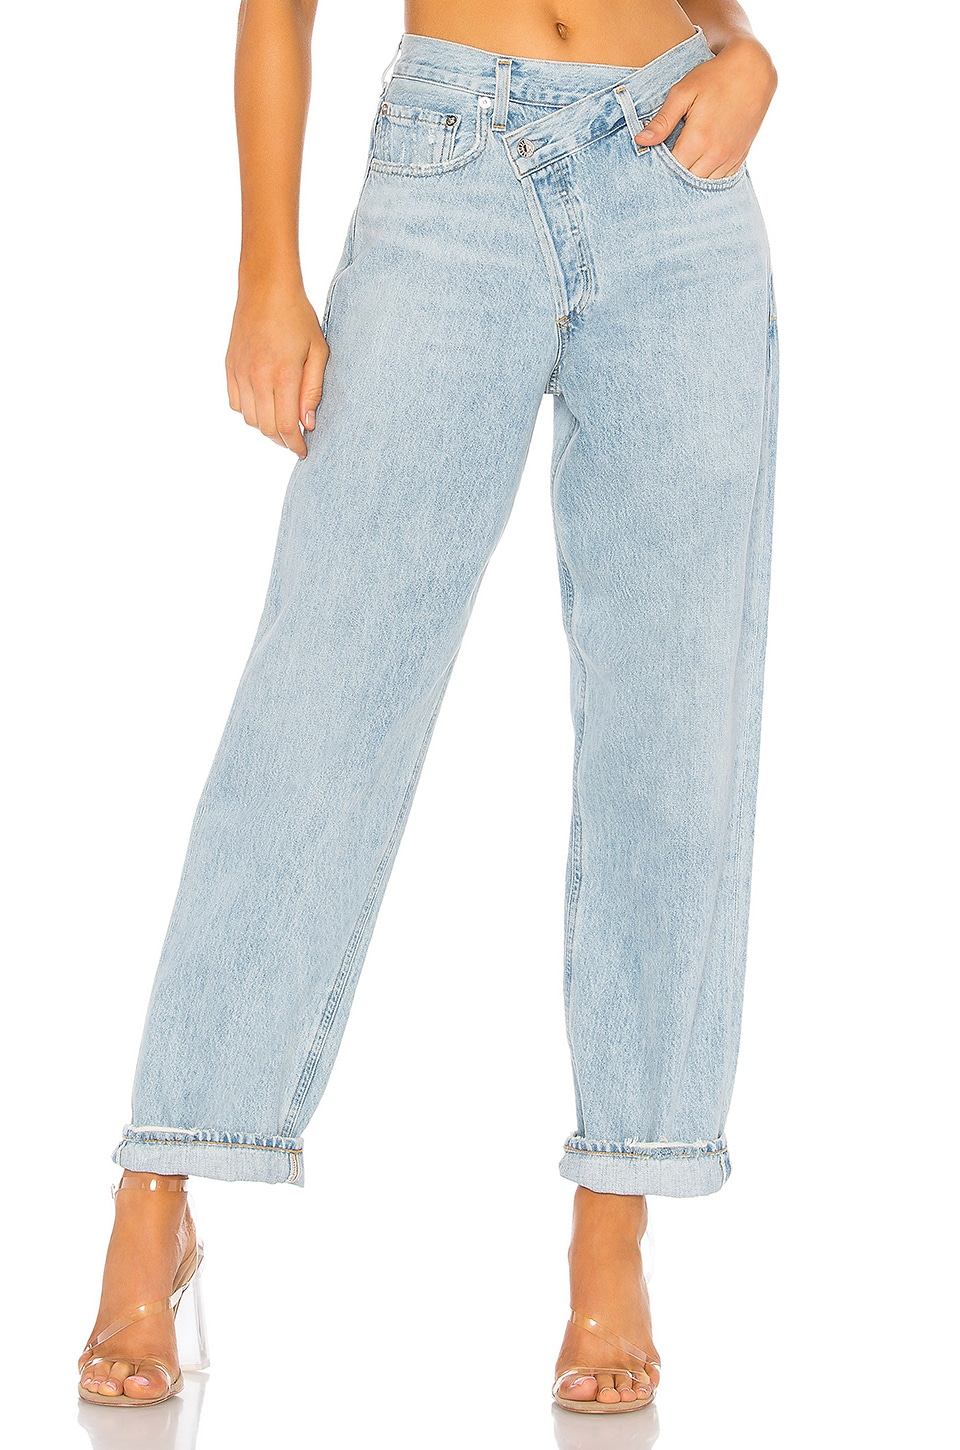 Criss Cross Upsized Jean             AGOLDE                                                                                                       CA$ 264.00 13